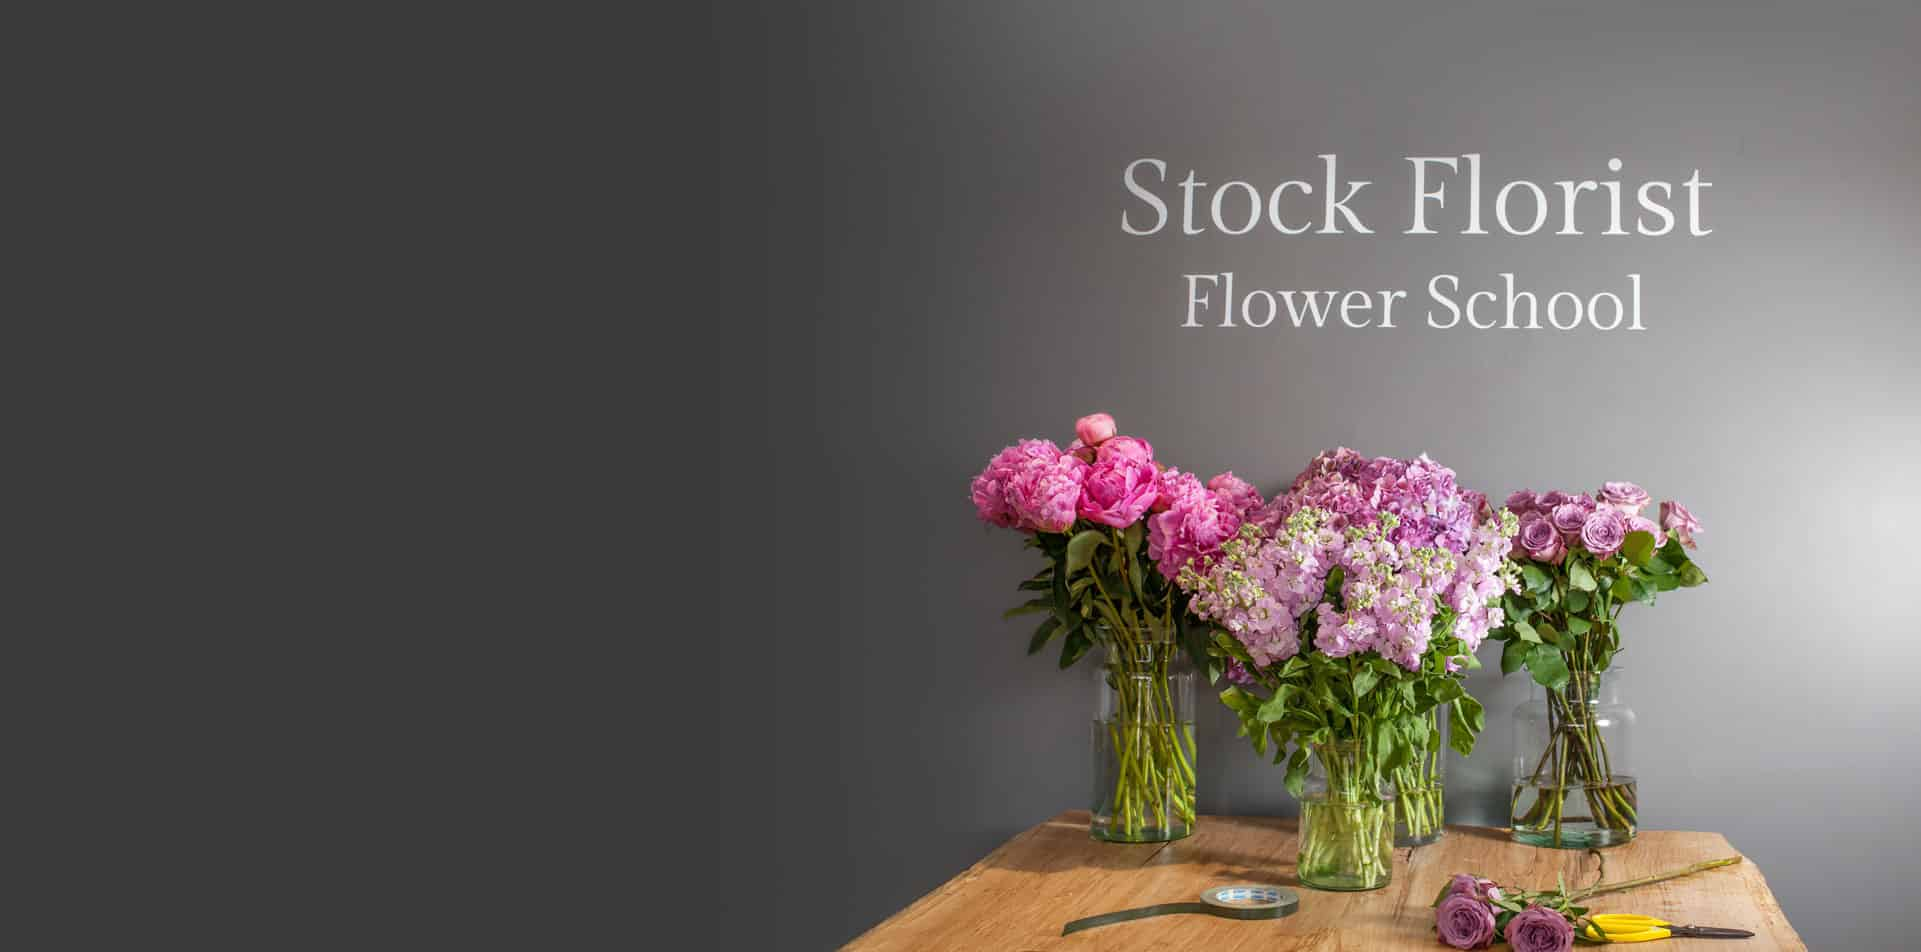 Flower School Header Image